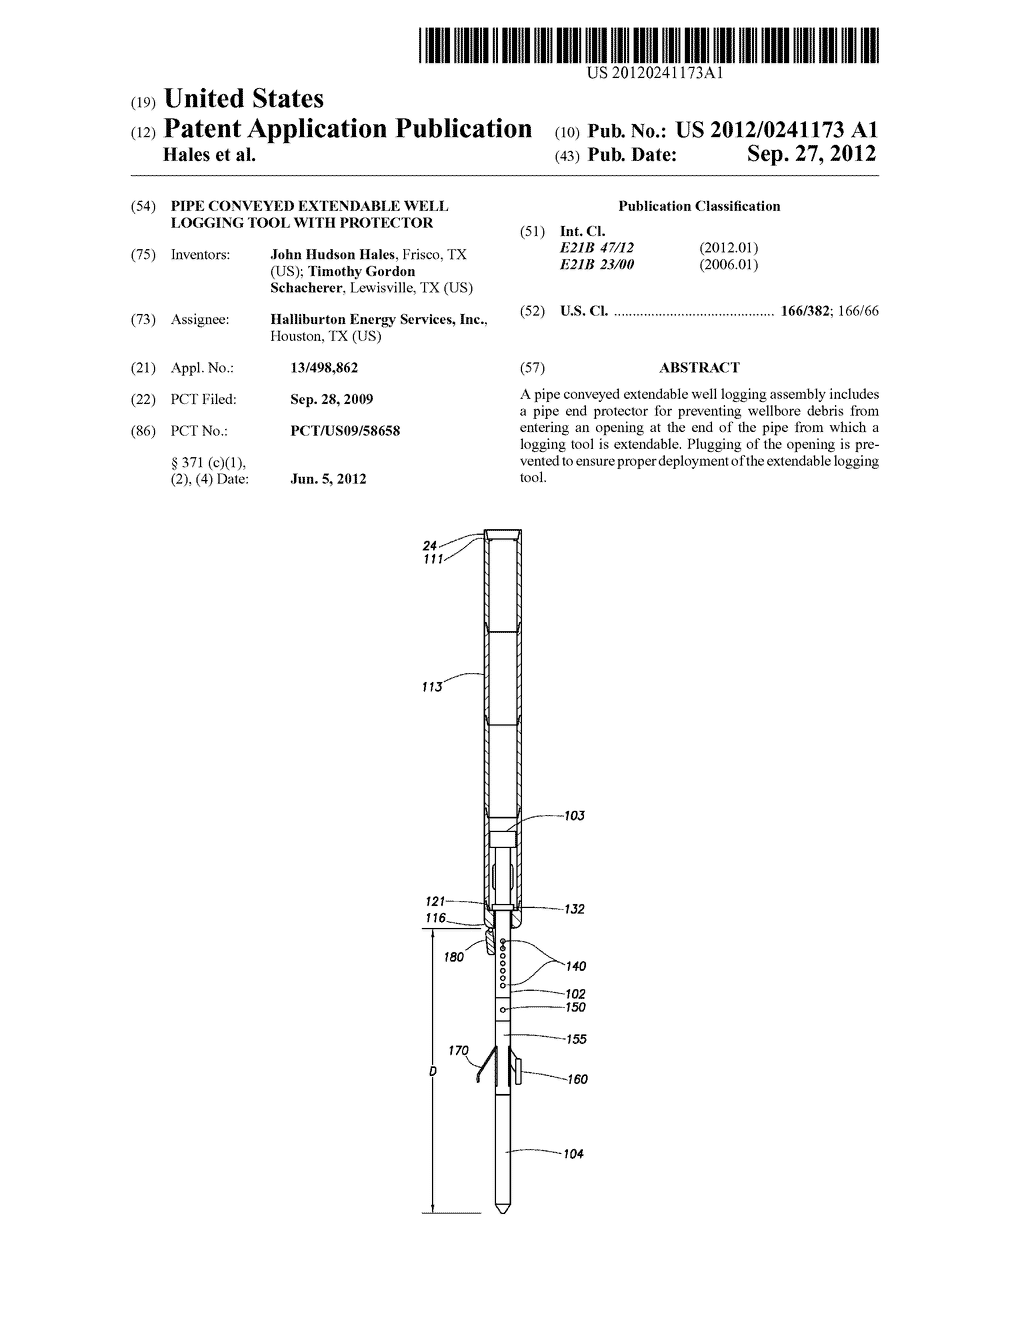 PIPE CONVEYED EXTENDABLE WELL LOGGING TOOL WITH PROTECTOR - diagram, schematic, and image 01